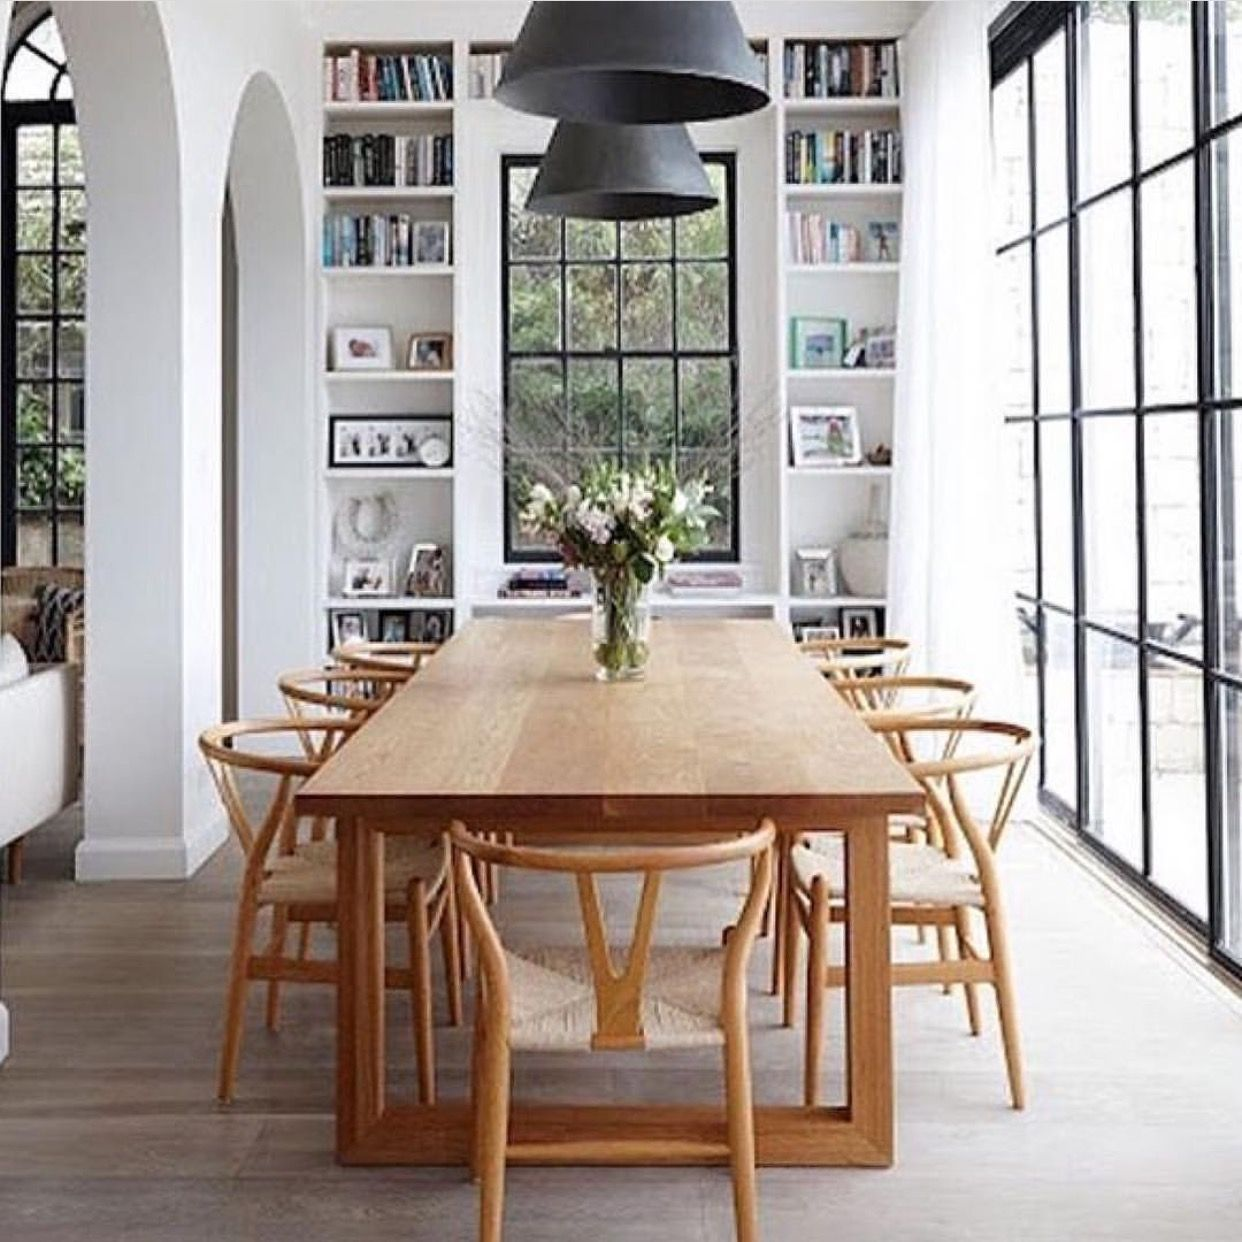 Awesome Dining Table @mark_tuckey